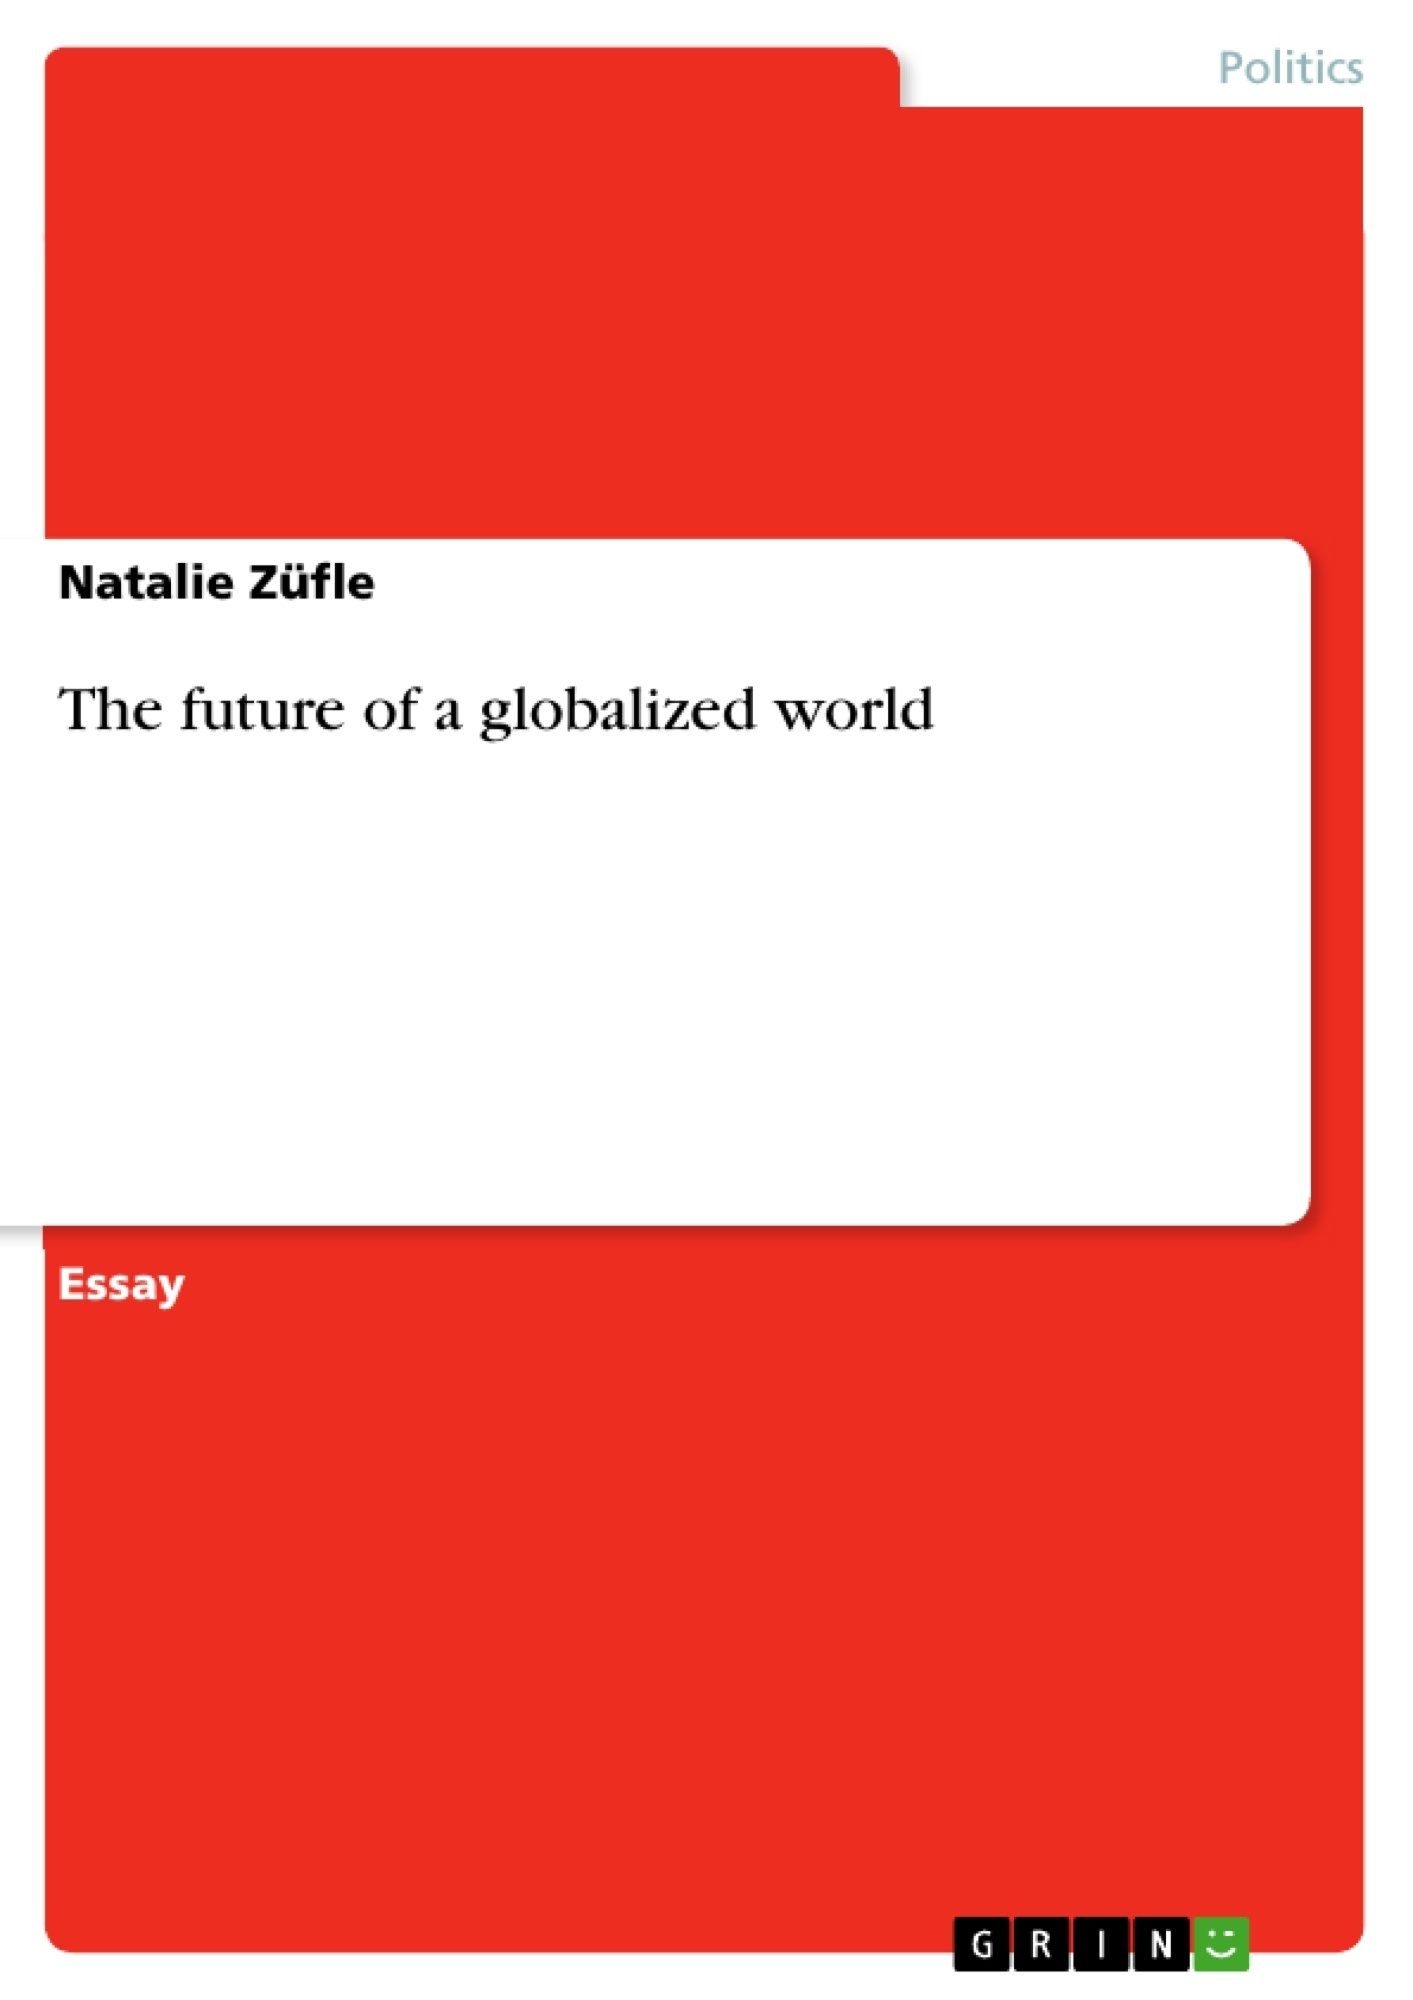 Title: The future of a globalized world